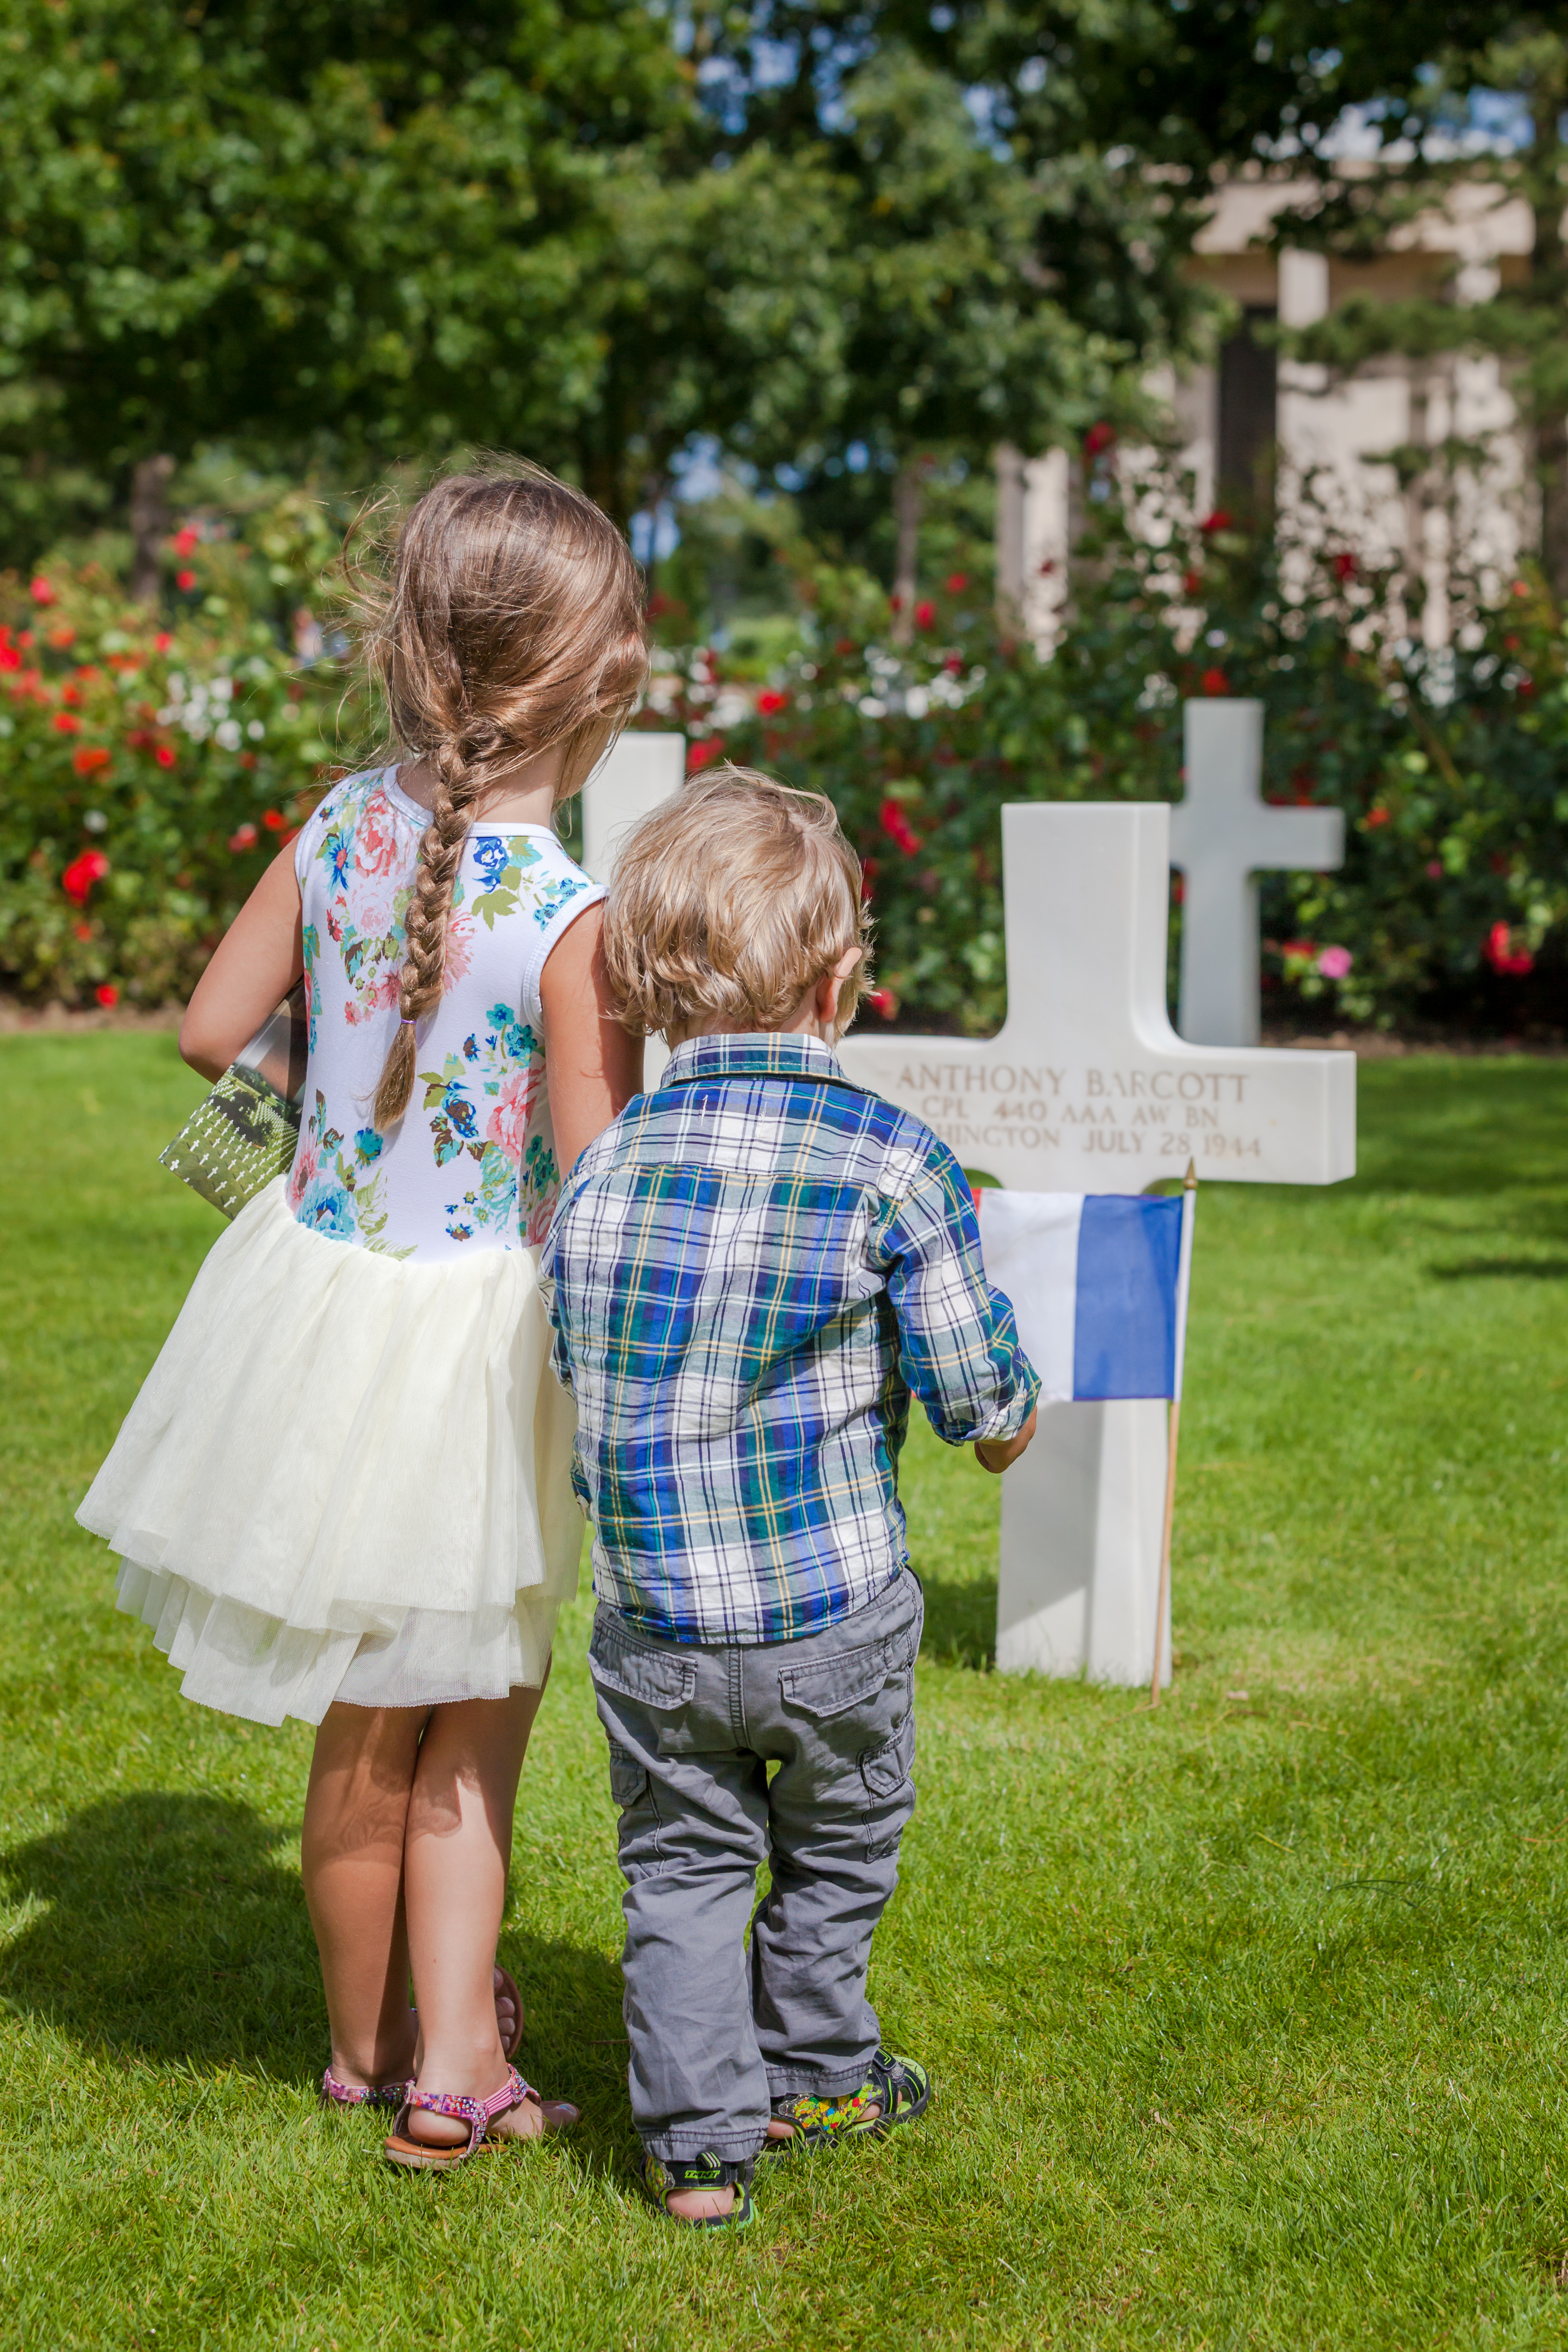 The author's children, looking at the grave of his great-uncle